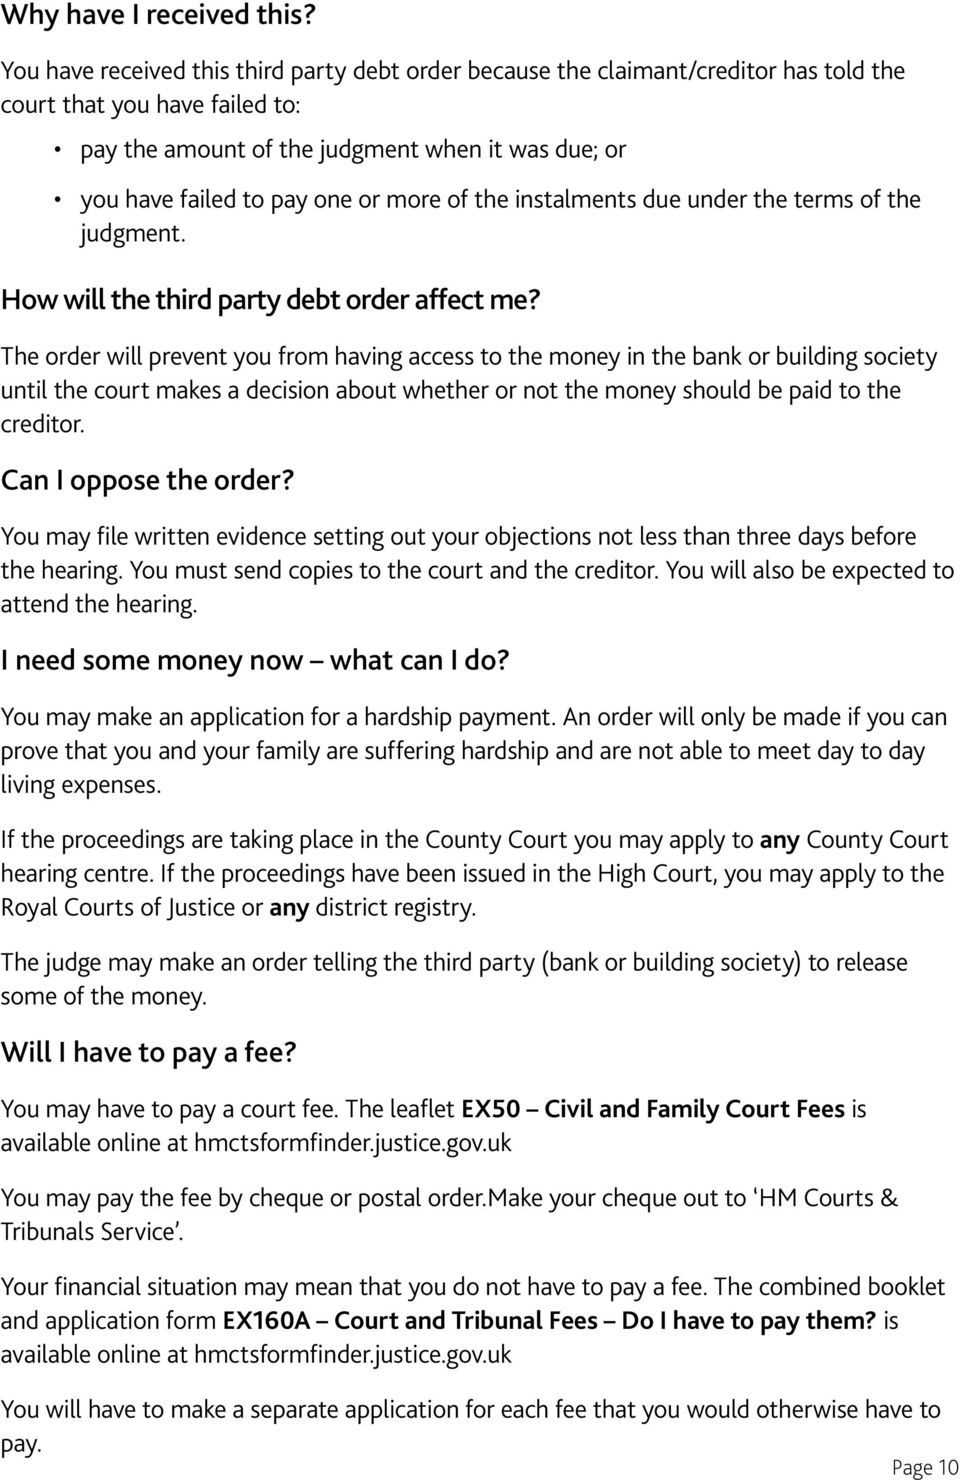 or more of the instalments due under the terms of the judgment. How will the third party debt order affect me?